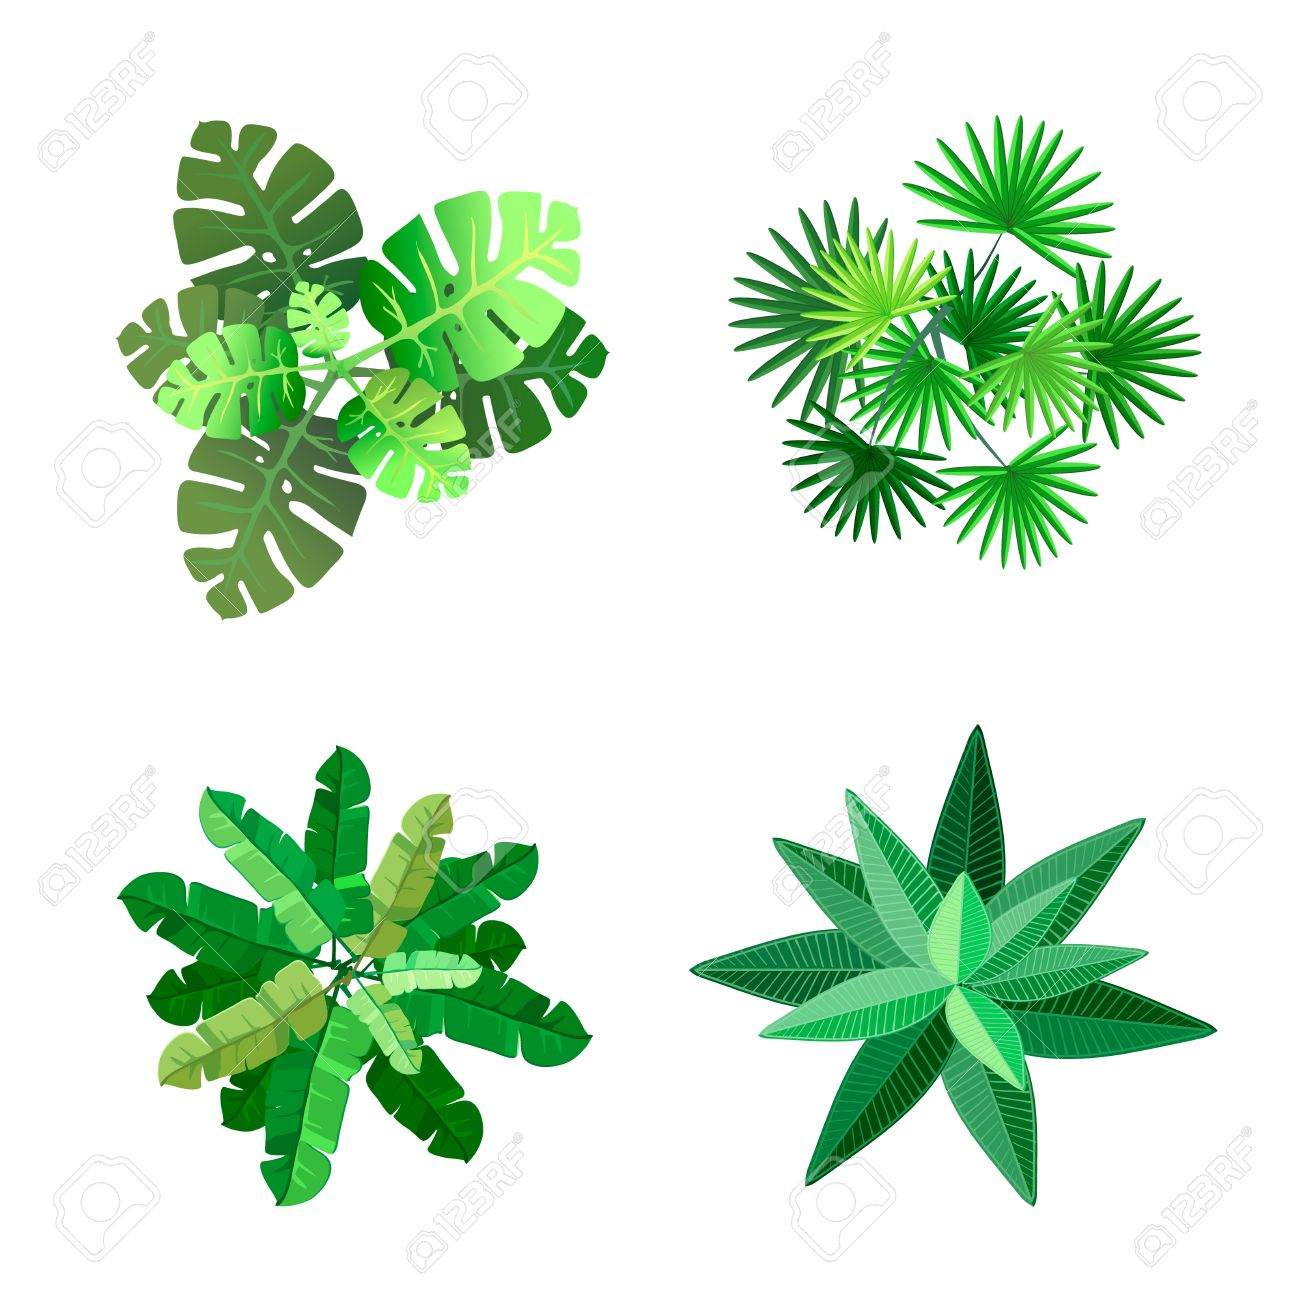 Trees Top View For Landscape Vector Illustration On White ... for Plant Top View Vector  113cpg